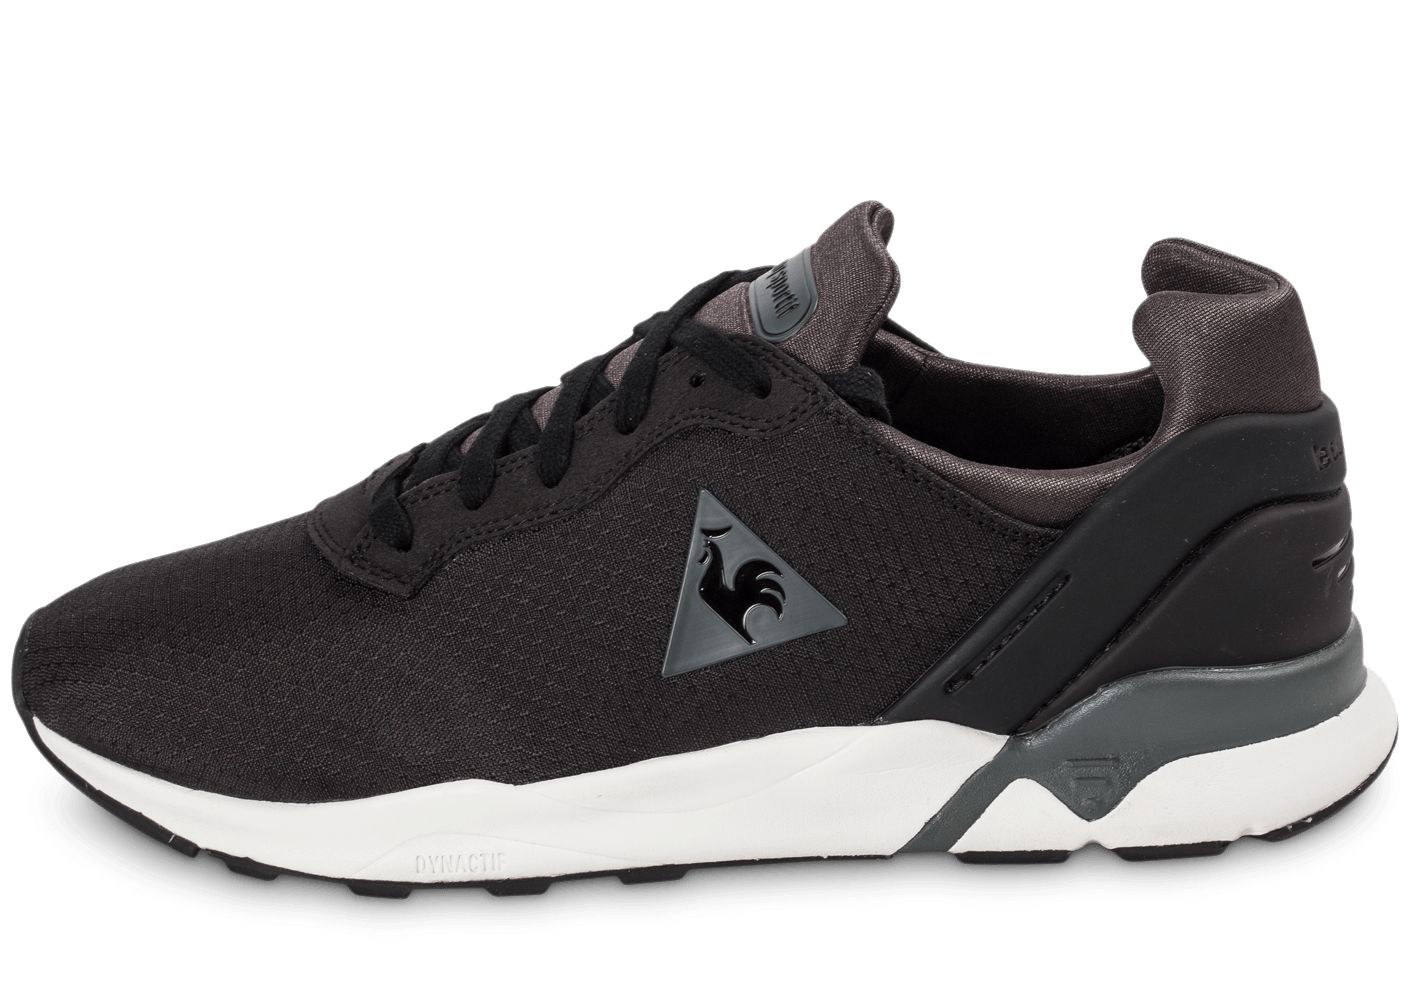 Chaussure Coq Sportif Homme 2017